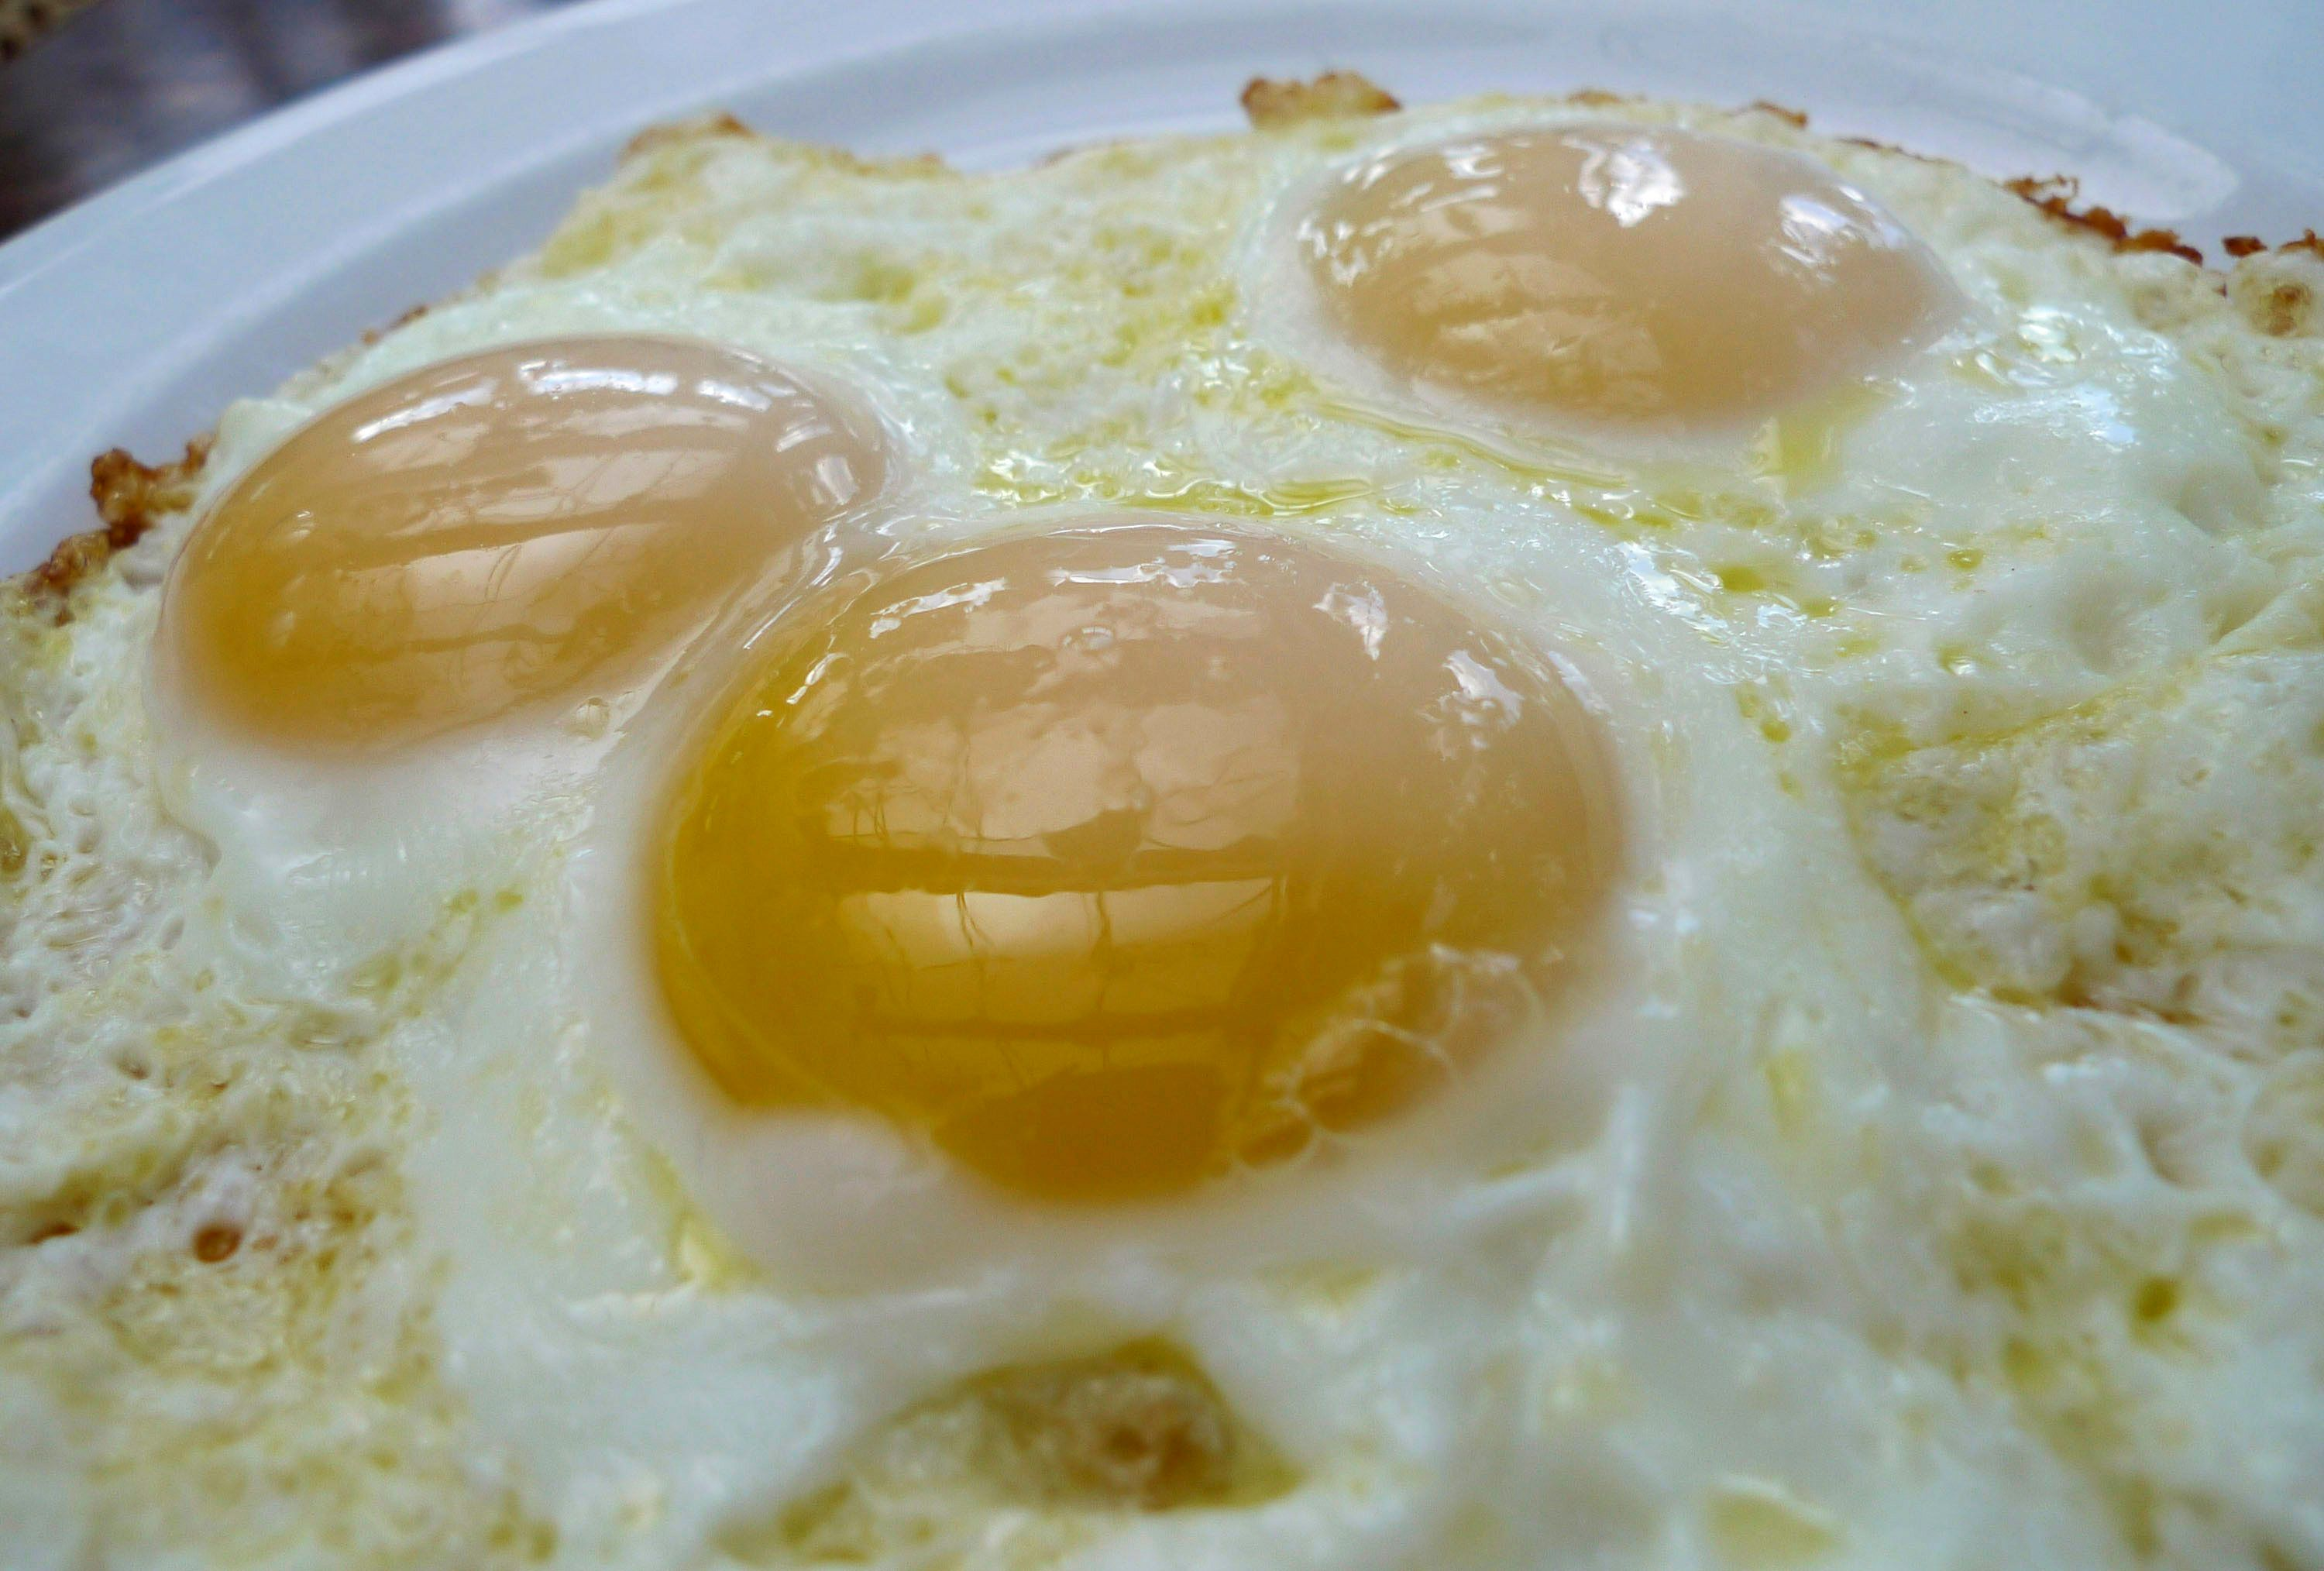 A plate of fried eggs are pictured at a Washington cafe, August 23, 2010. The U.S. Food and Drug Administration commissioner on Monday said there may be more recalls of eggs in the salmonella outbreak and the agency did not yet know how the eggs and chickens were contaminated.    REUTERS/Jason Reed   (UNITED STATES - Tags: FOOD HEALTH)